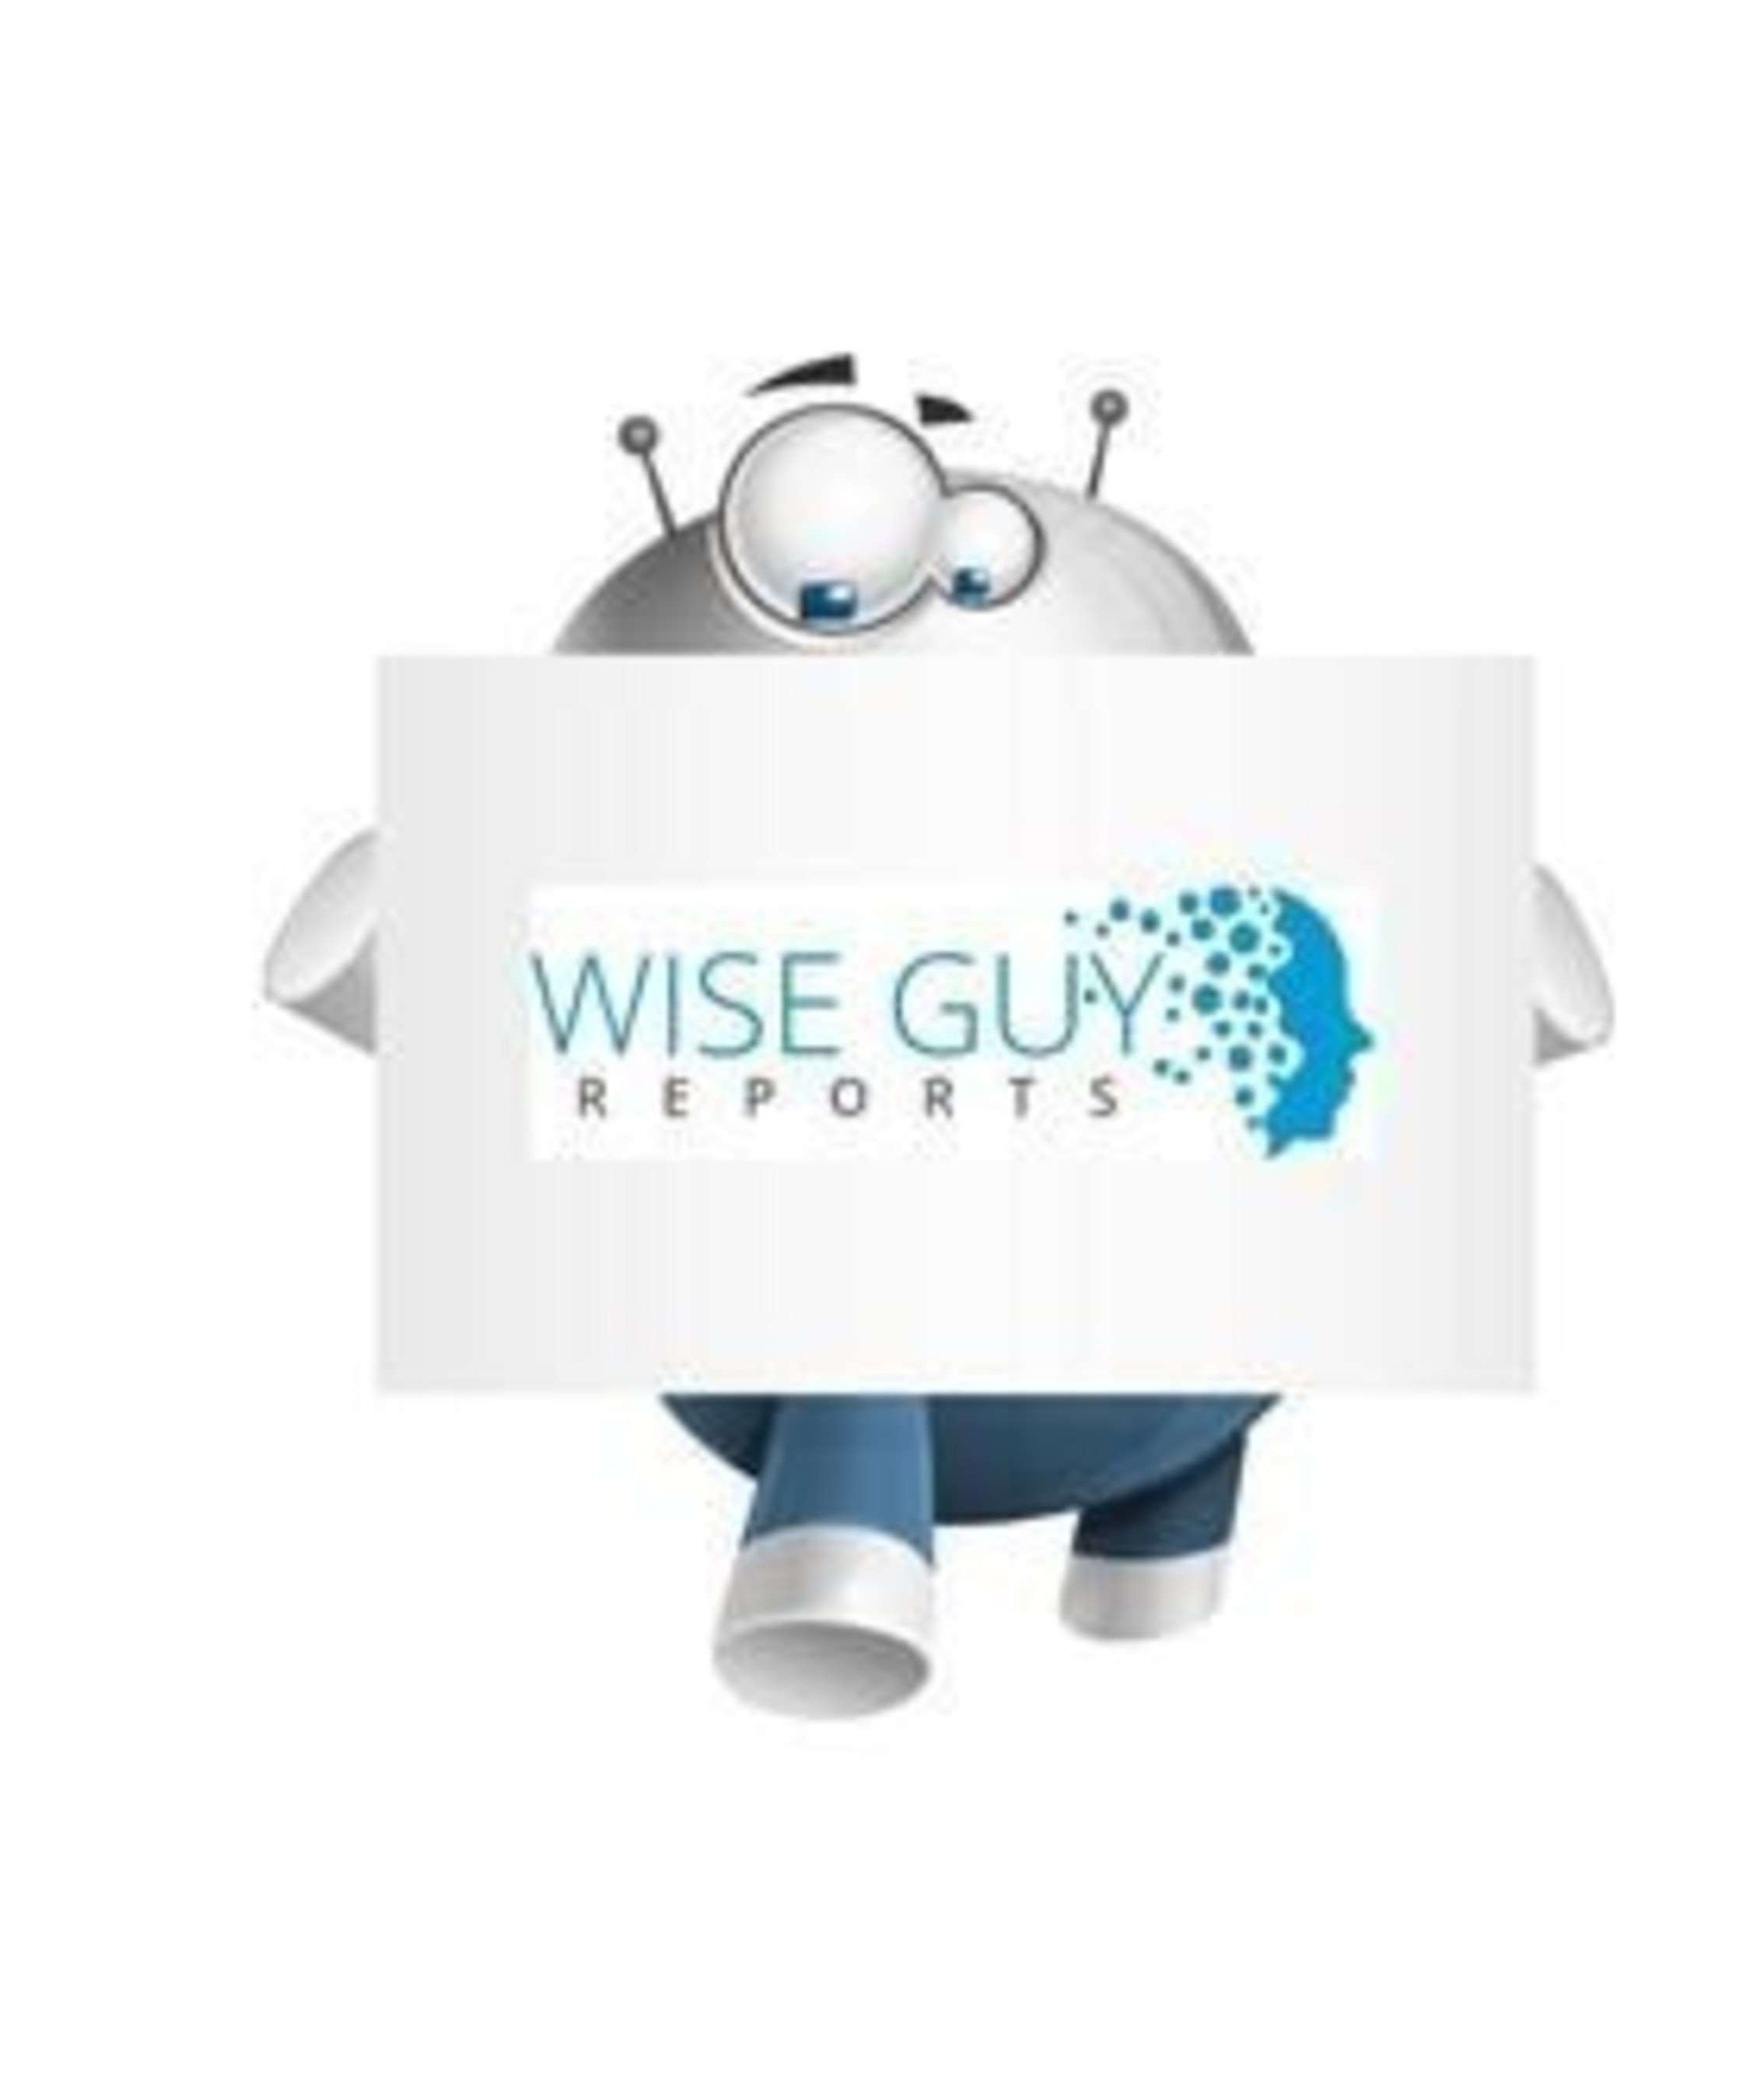 Outsourced Software Testing Services Industry Global Market Research Report 2016